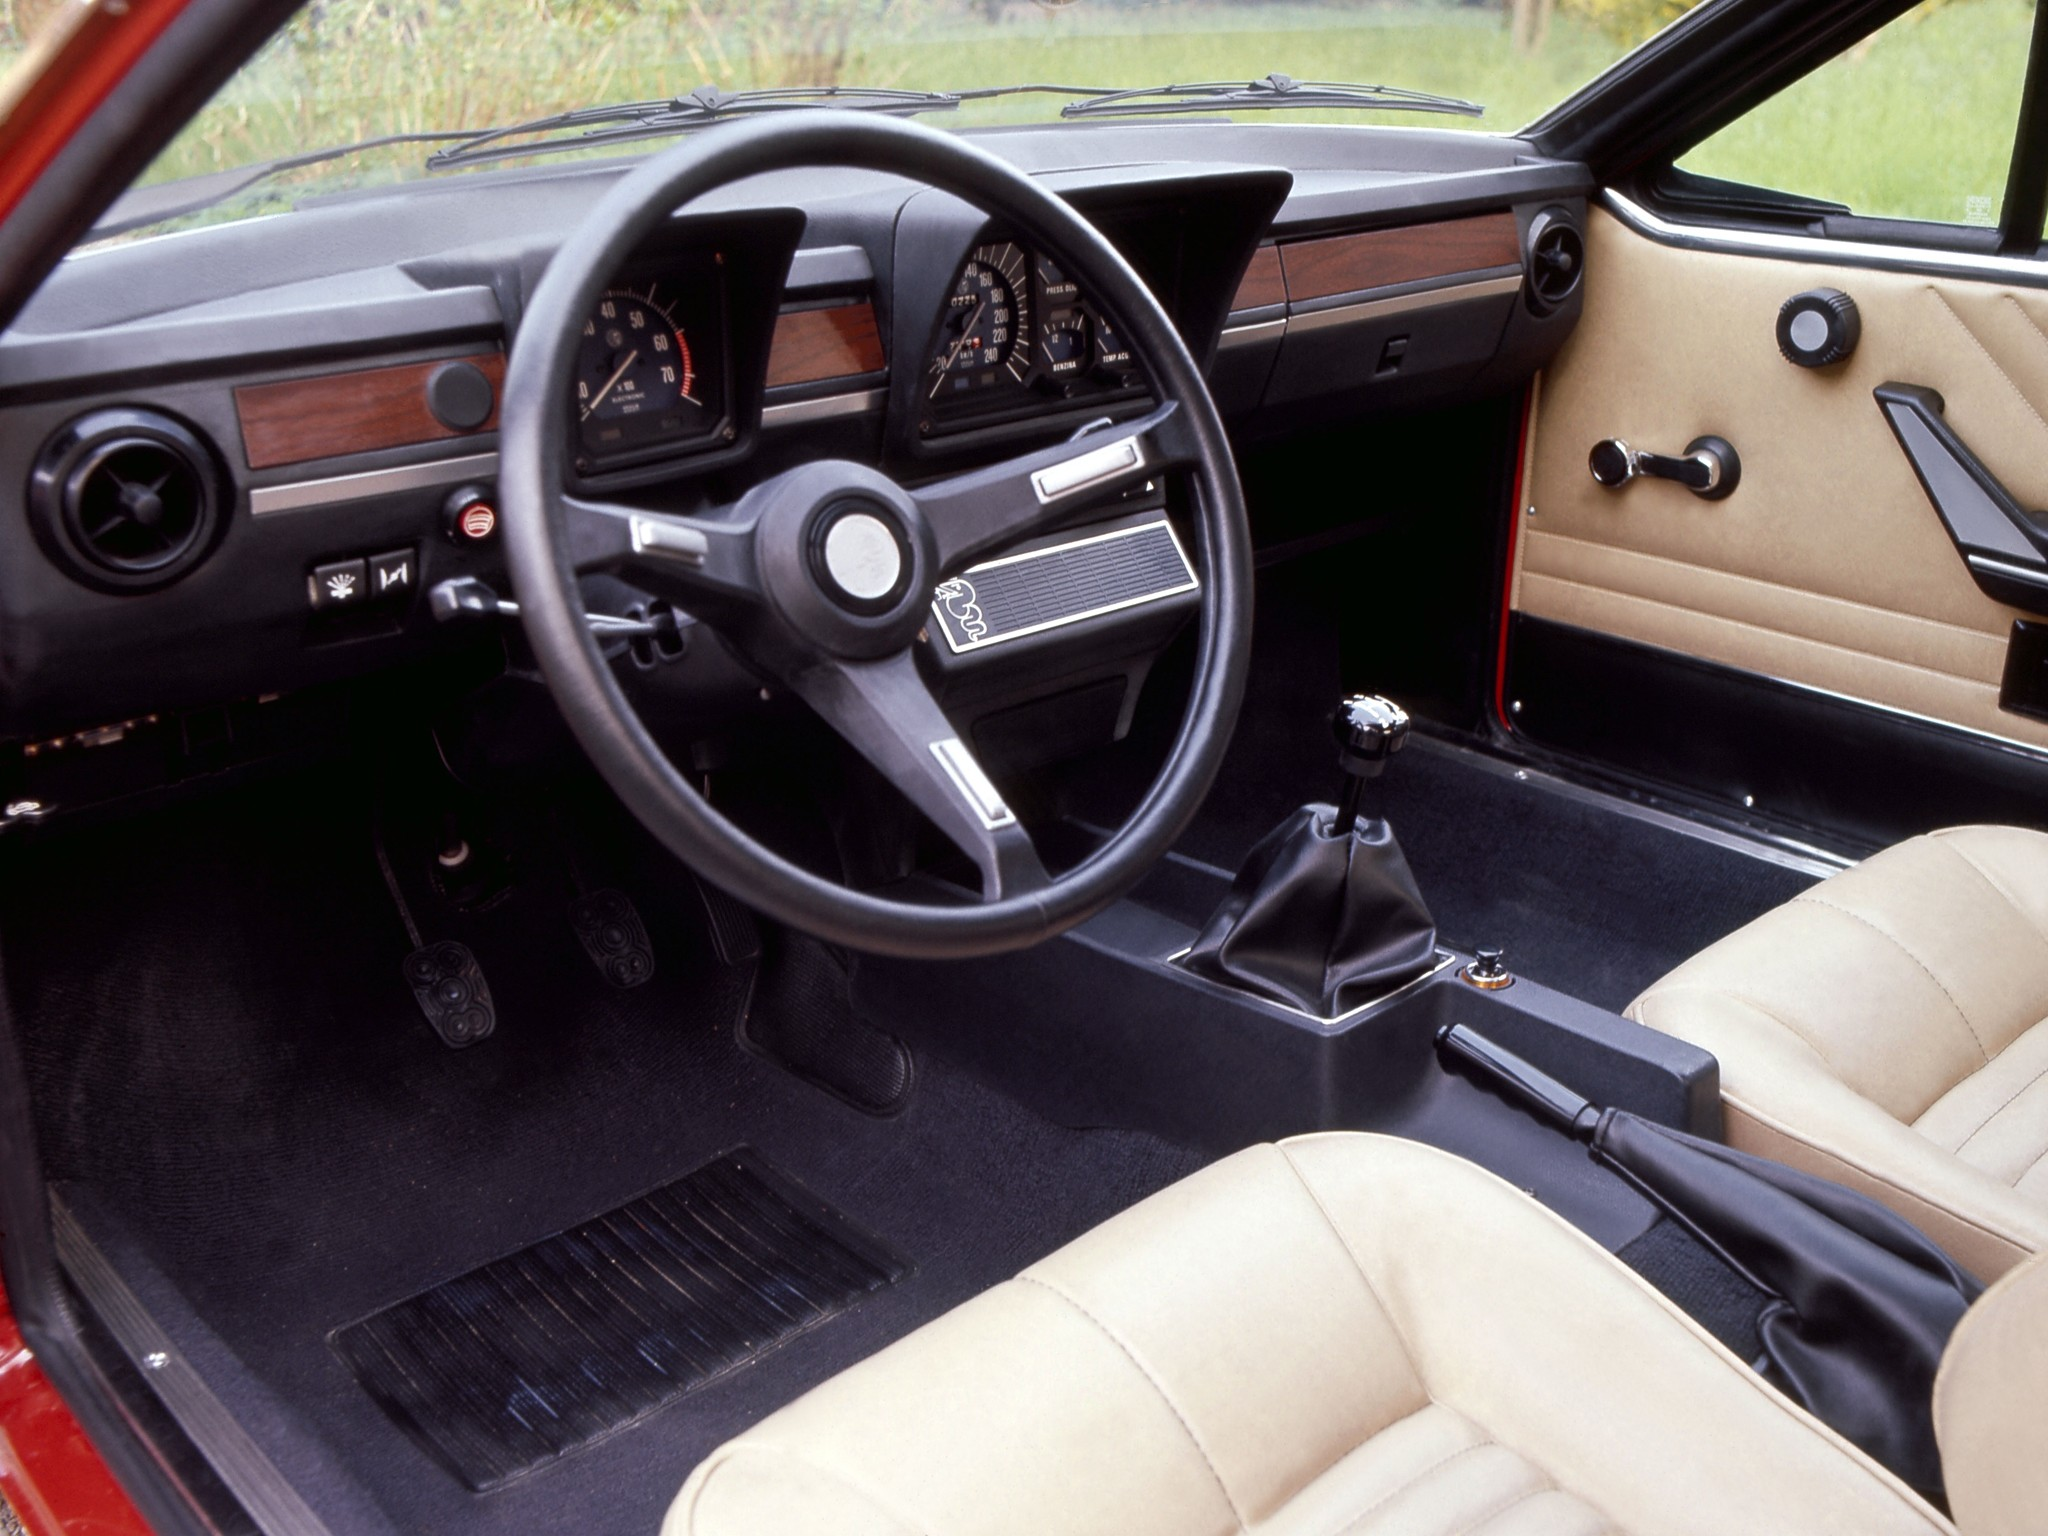 Alfa Romeo Alfetta Gtv Specs Photos 1976 1977 1978 Make Your Own Beautiful  HD Wallpapers, Images Over 1000+ [ralydesign.ml]